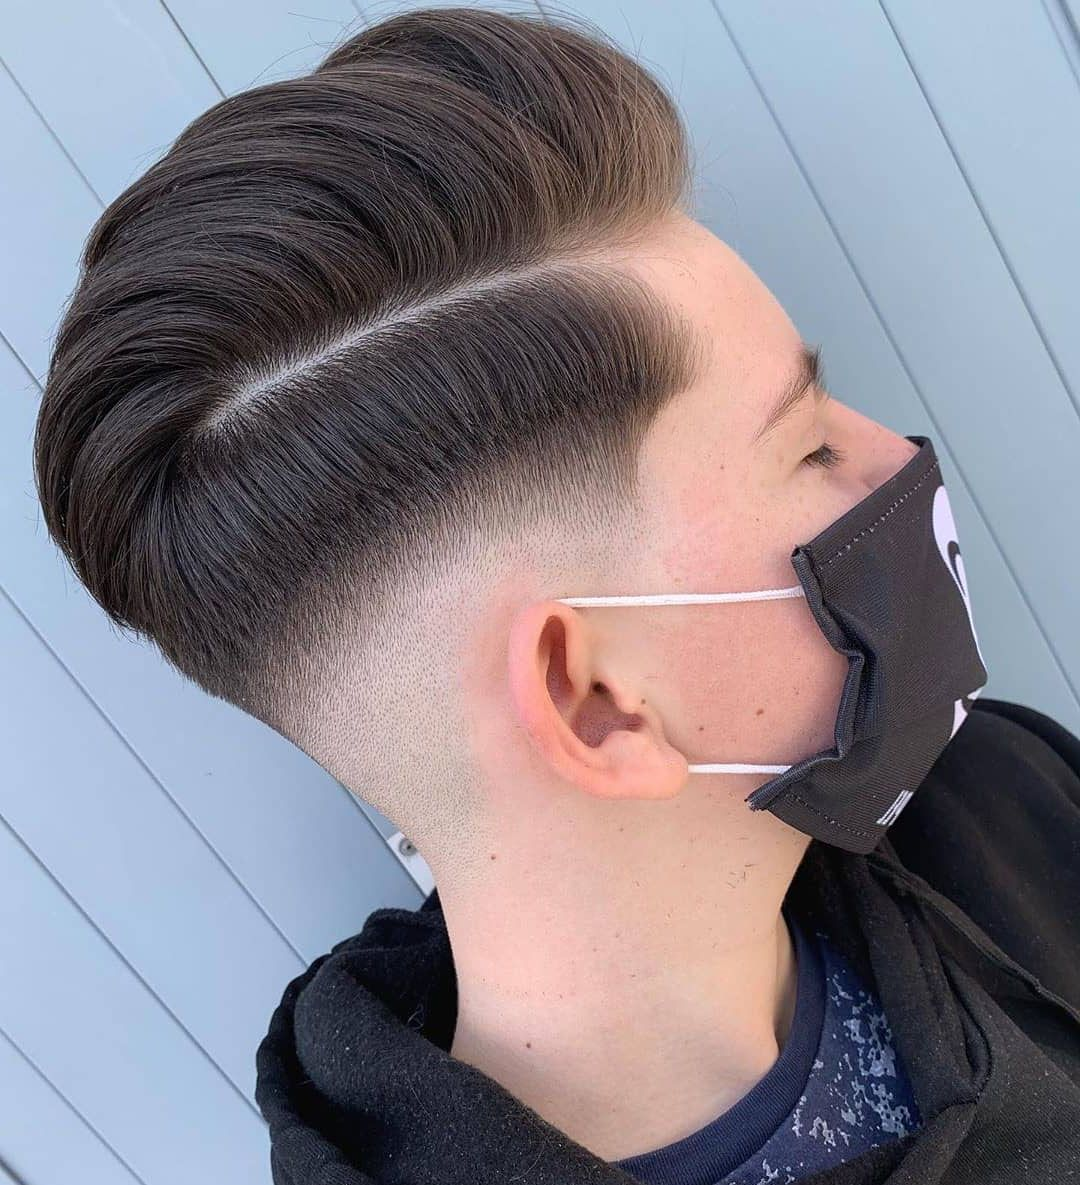 Best Low Fade Haircut For Men Find More Incredible Haircuts At Barbarianstyle Net Hair Hairstyles Haircut Low Fade Haircut Fade Haircut Mens Haircuts Fade